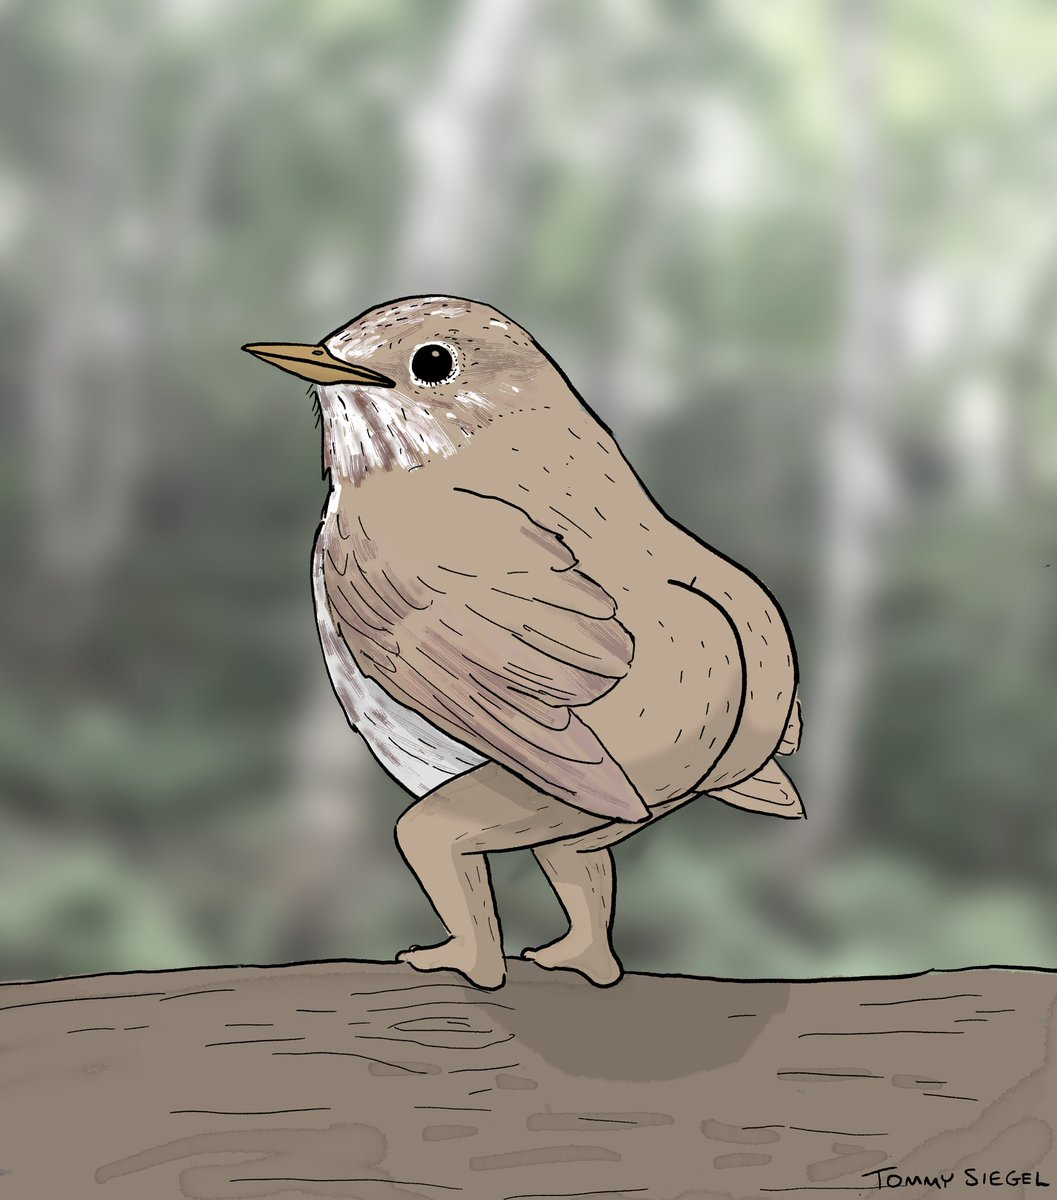 ok so i got some constructive criticism from my first attempt at drawing birds. many people said the legs weren't realistic enough, i think i finally got it though, lemme know what you think https://t.co/kcX6hVTMei